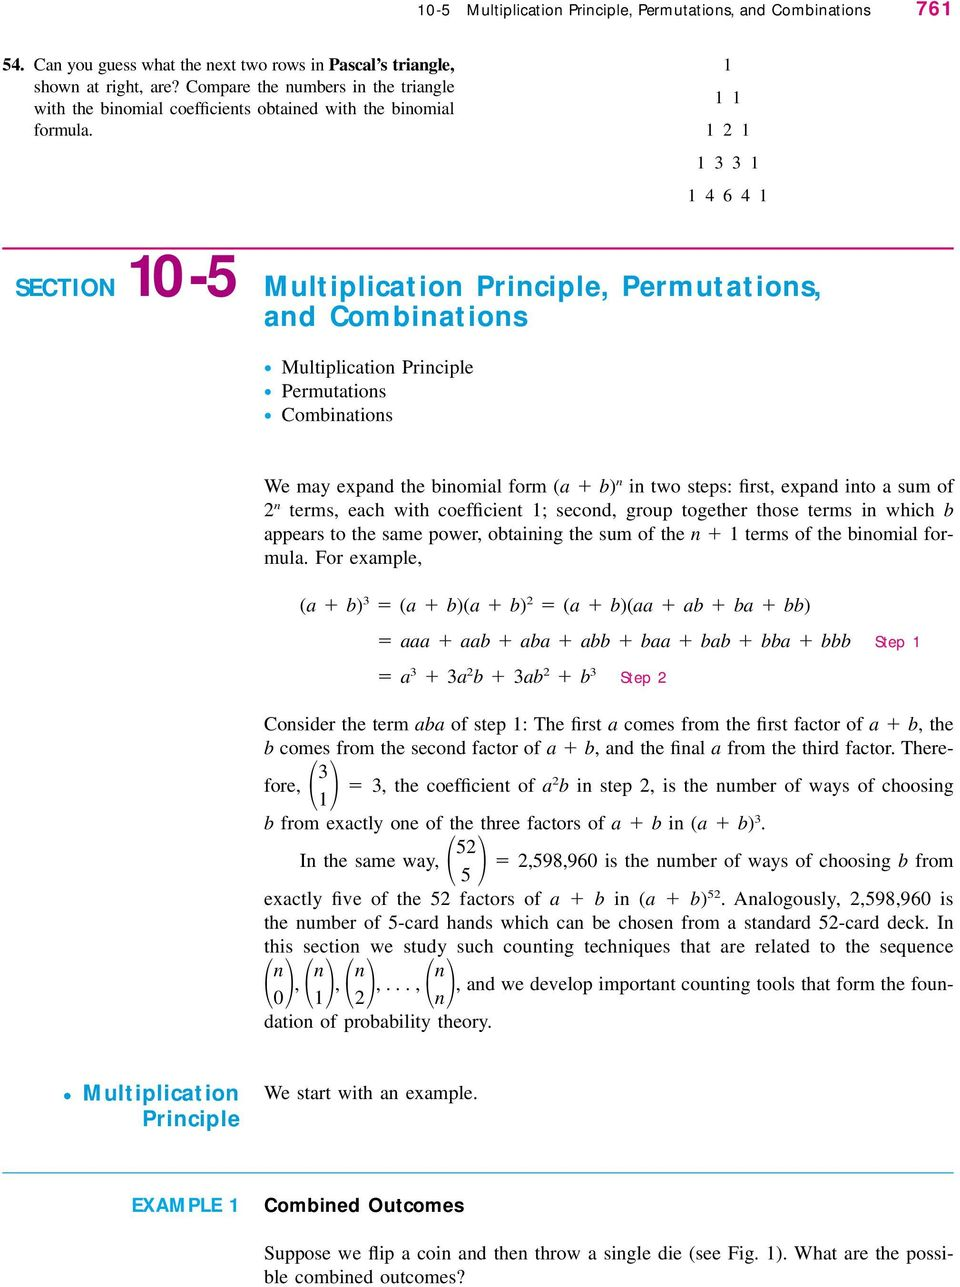 1 11 121 1331 14641 SECTION 10-5 Multiplication Principle, Permutations, and Combinations Multiplication Principle Permutations Combinations We may expand the binomial form (a b) n in two steps: